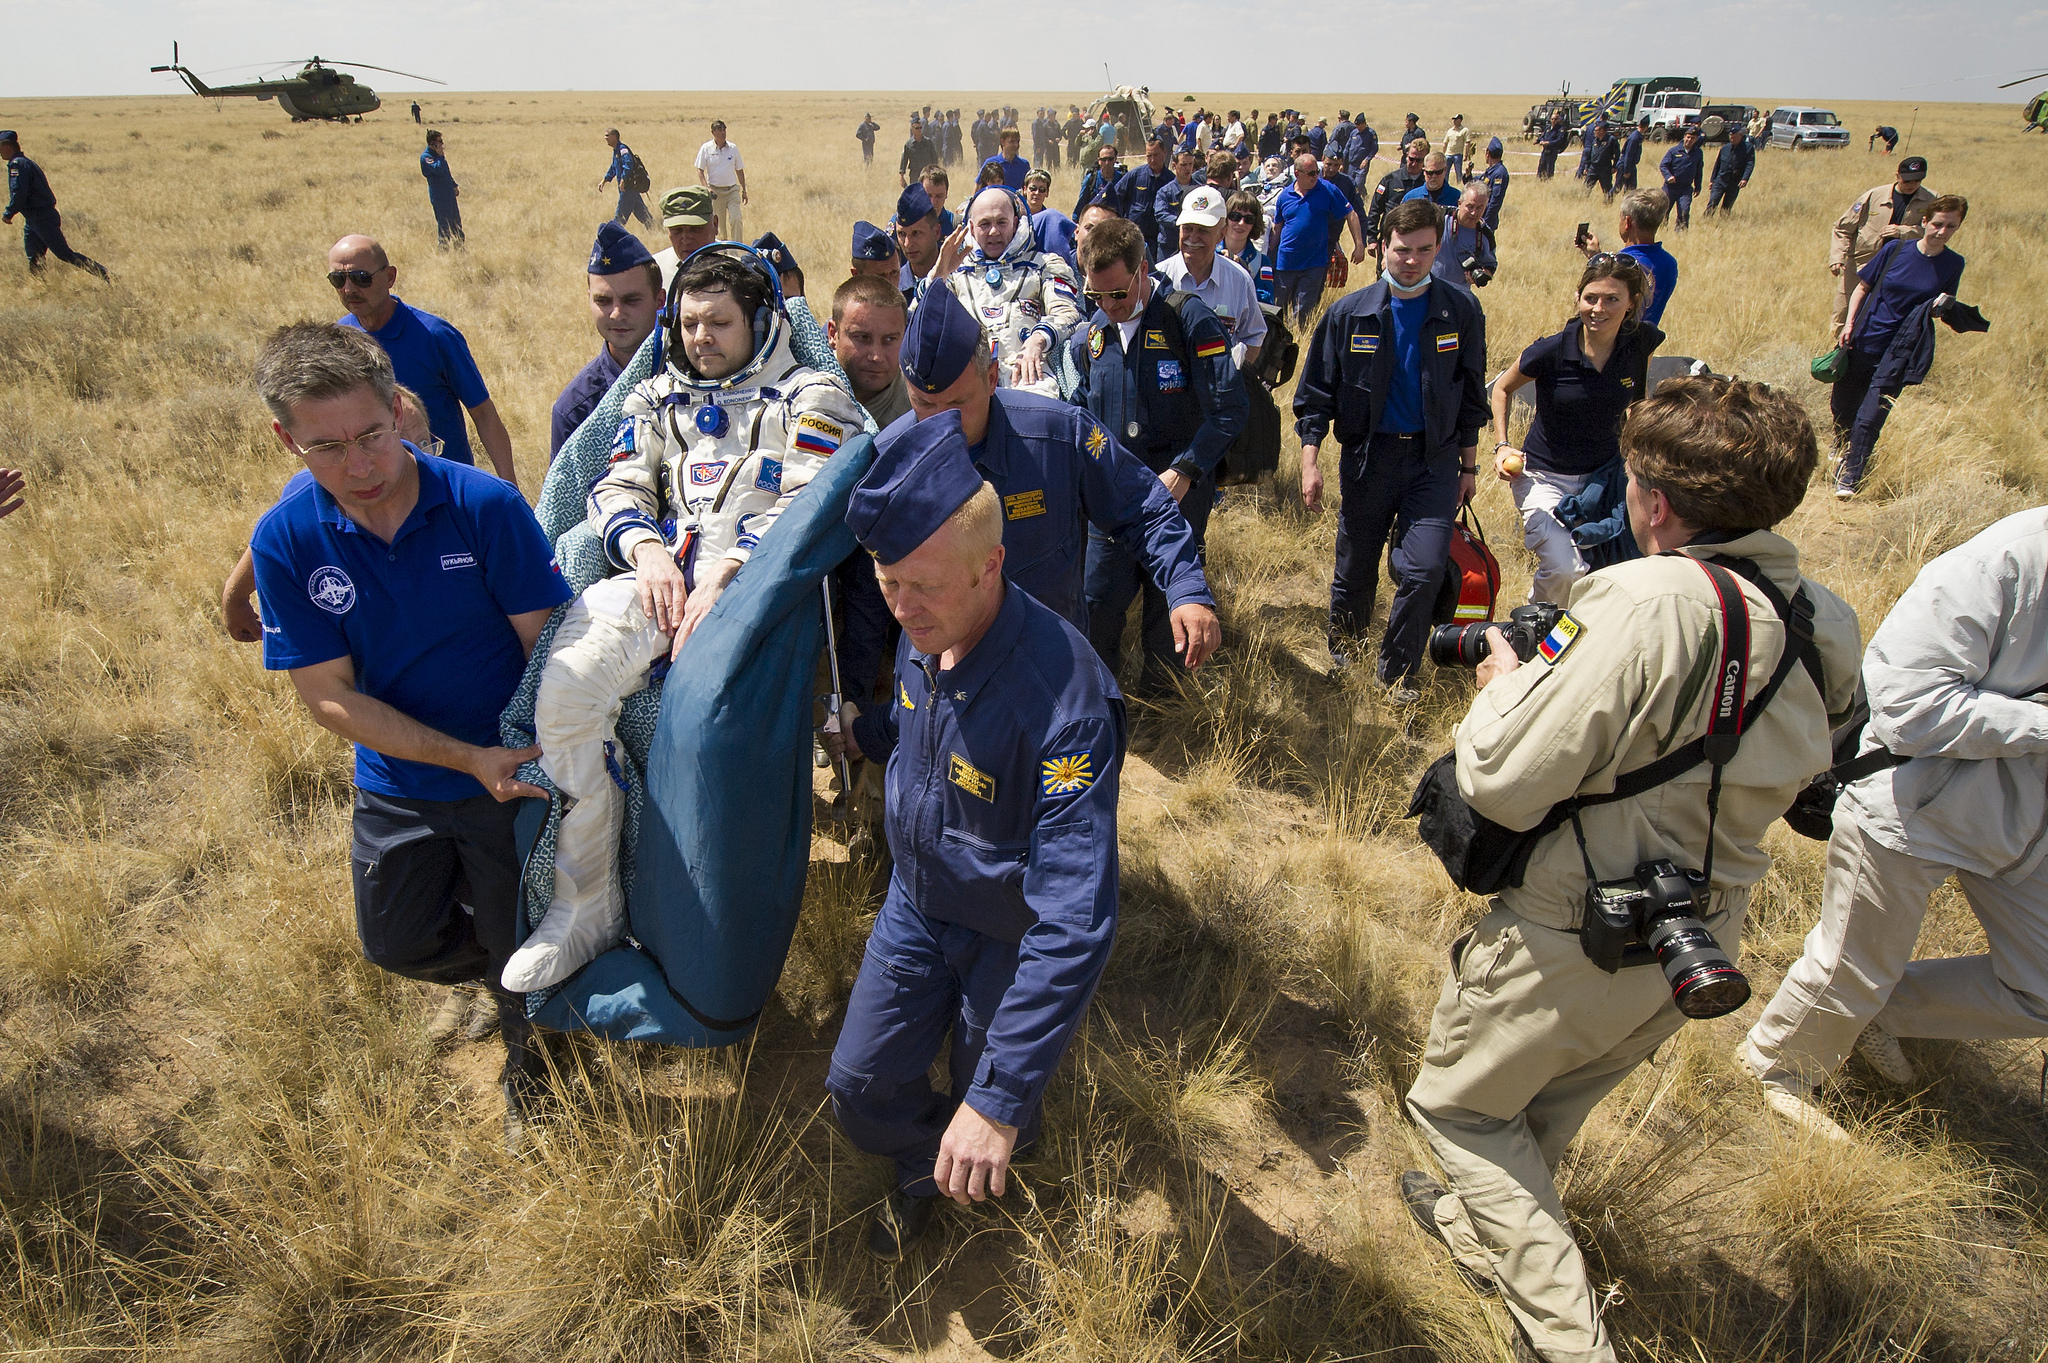 Space Station Crew Caravan: Expedition 31